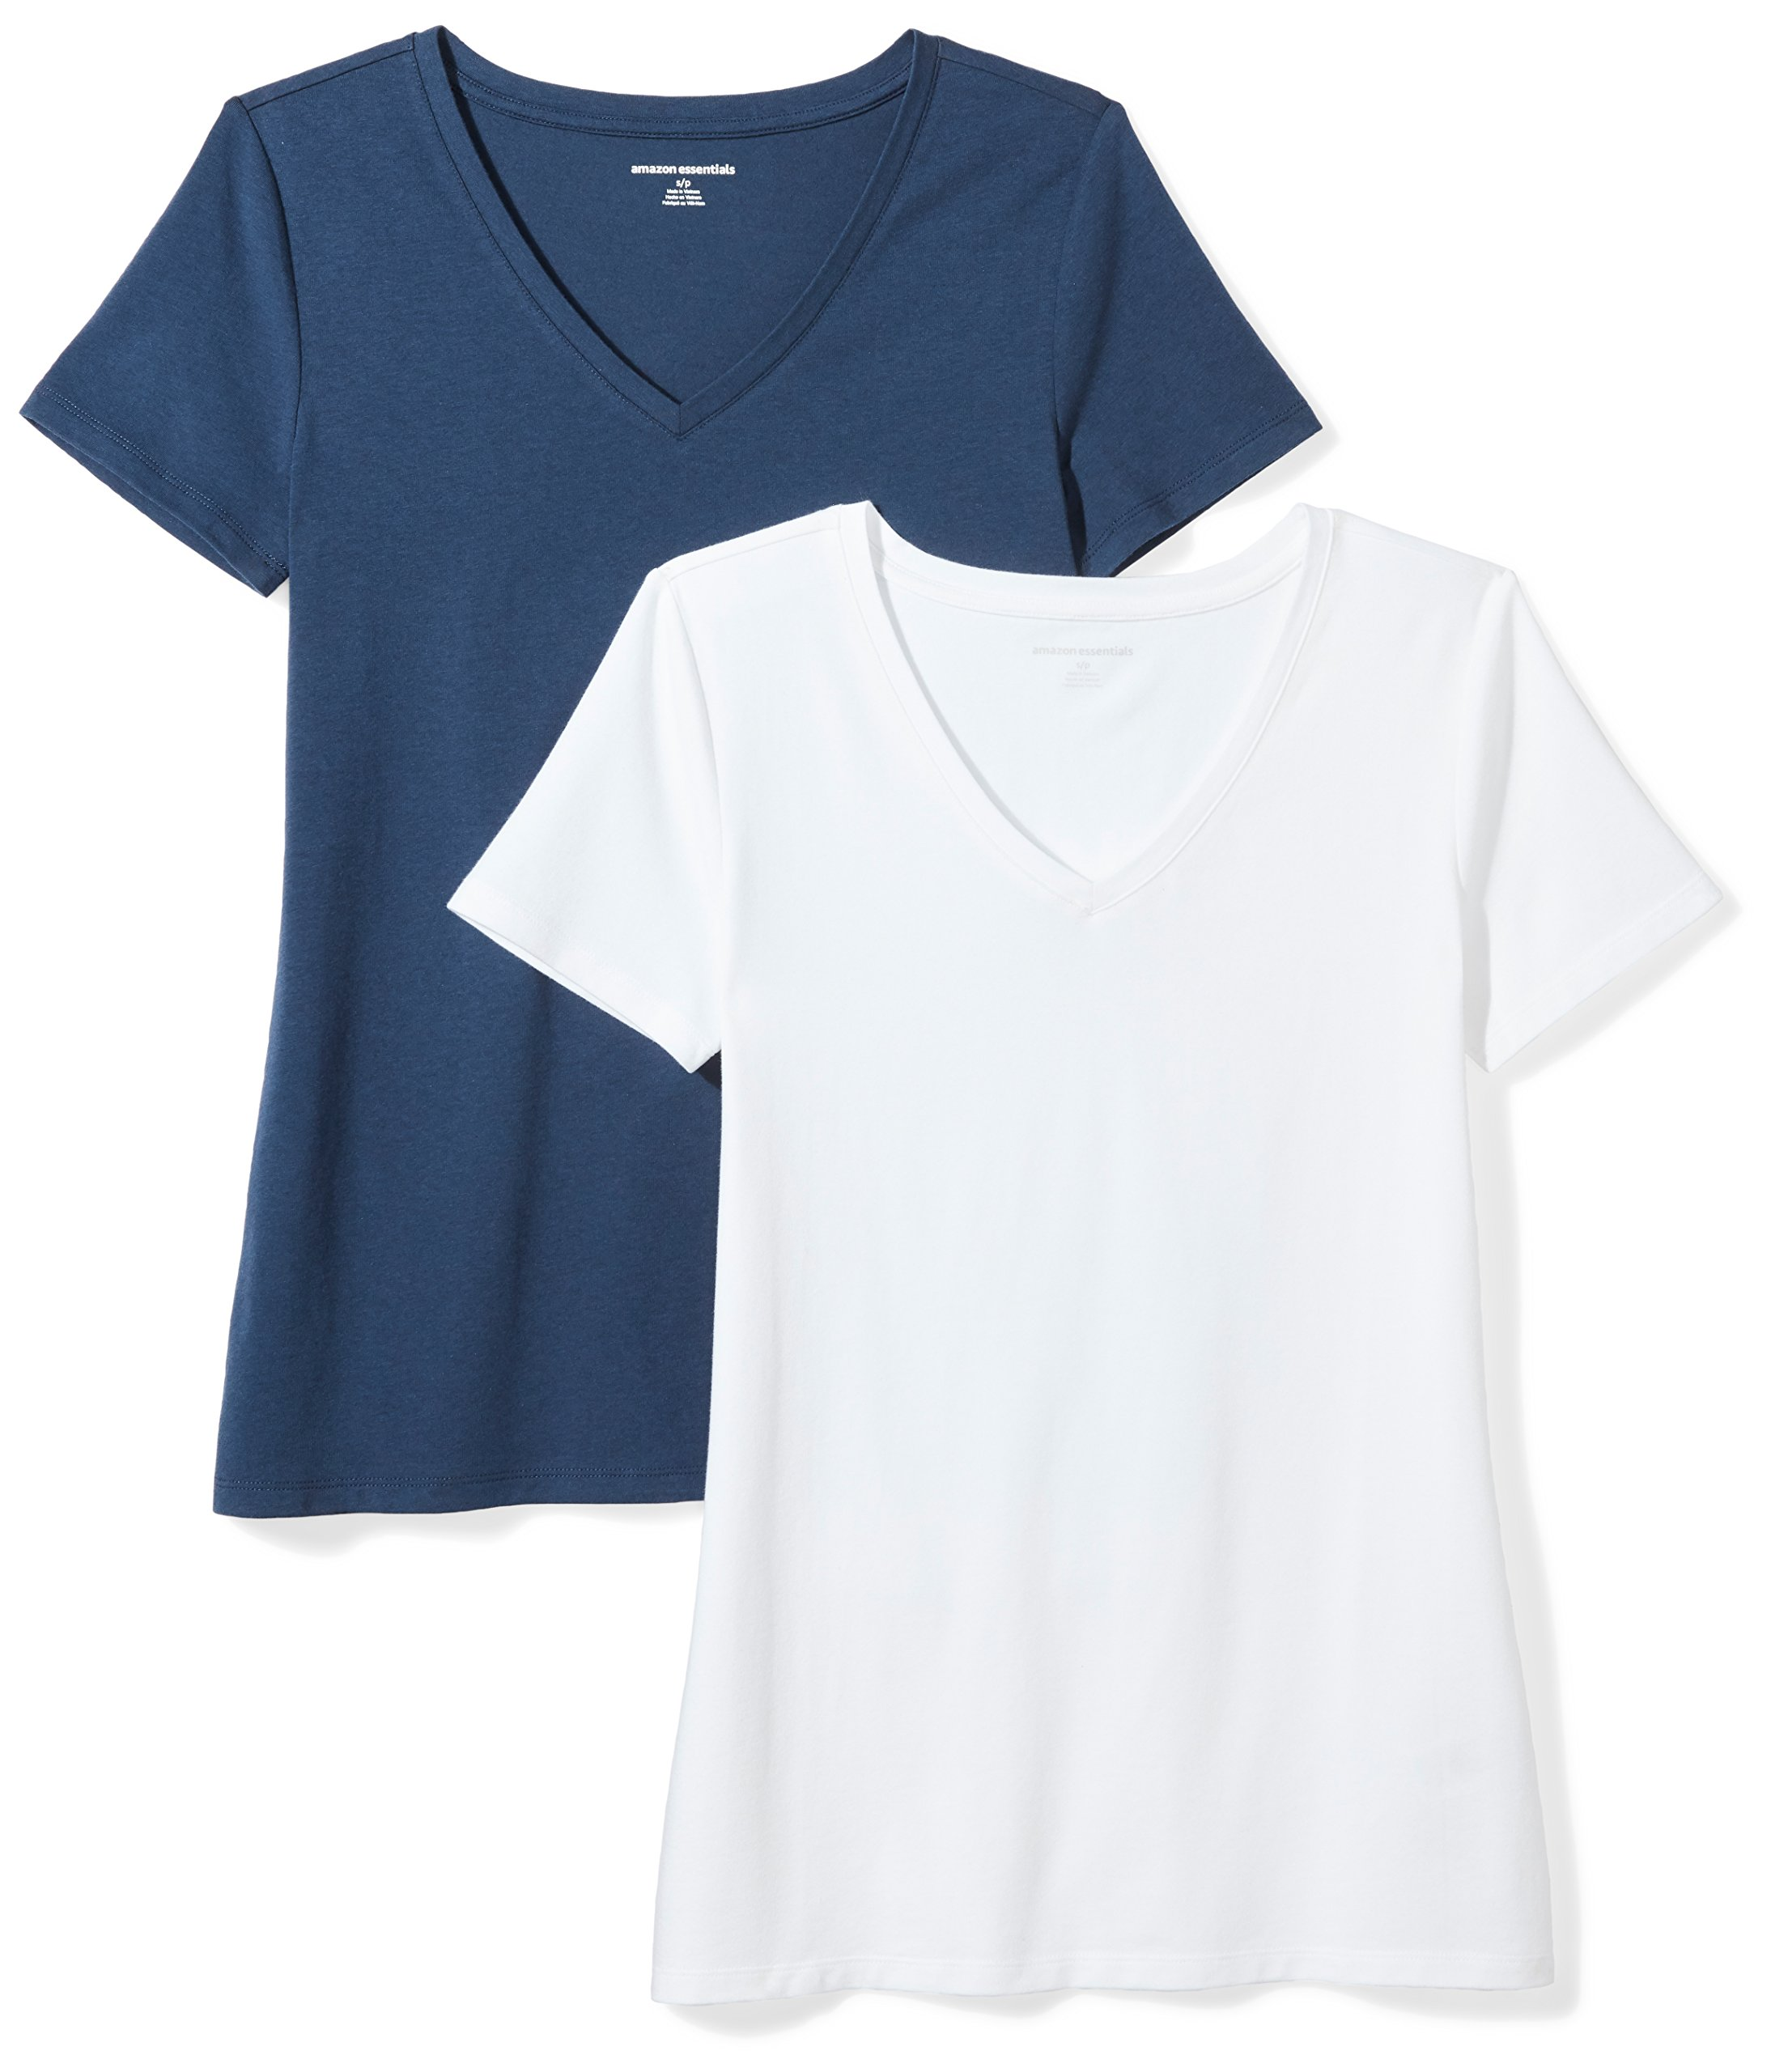 Amazon Essentials Women's 2-Pack Short-Sleeve V-Neck Solid T-Shirt, Navy/White, Large